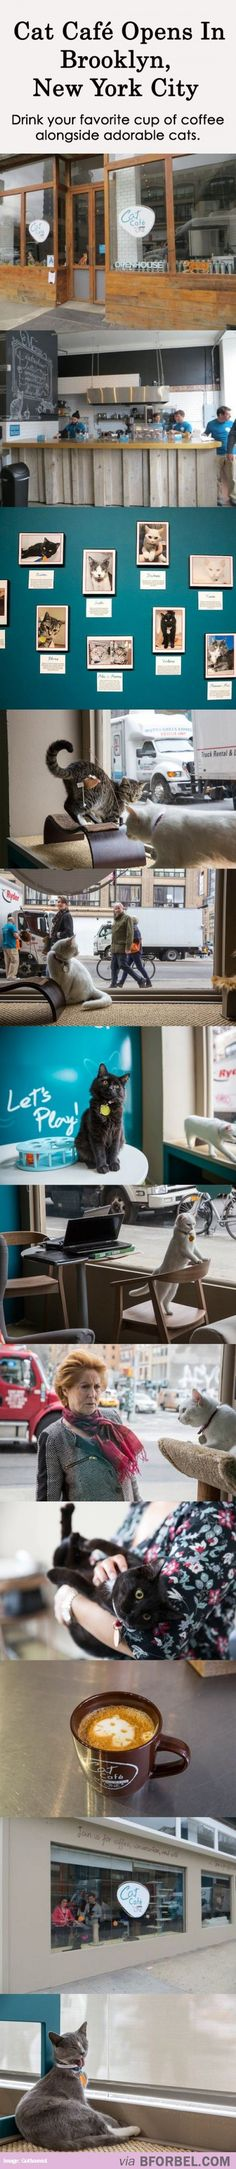 Brooklyn's First Adorable Cat Cafe… That is AWESOME!!! I will go there